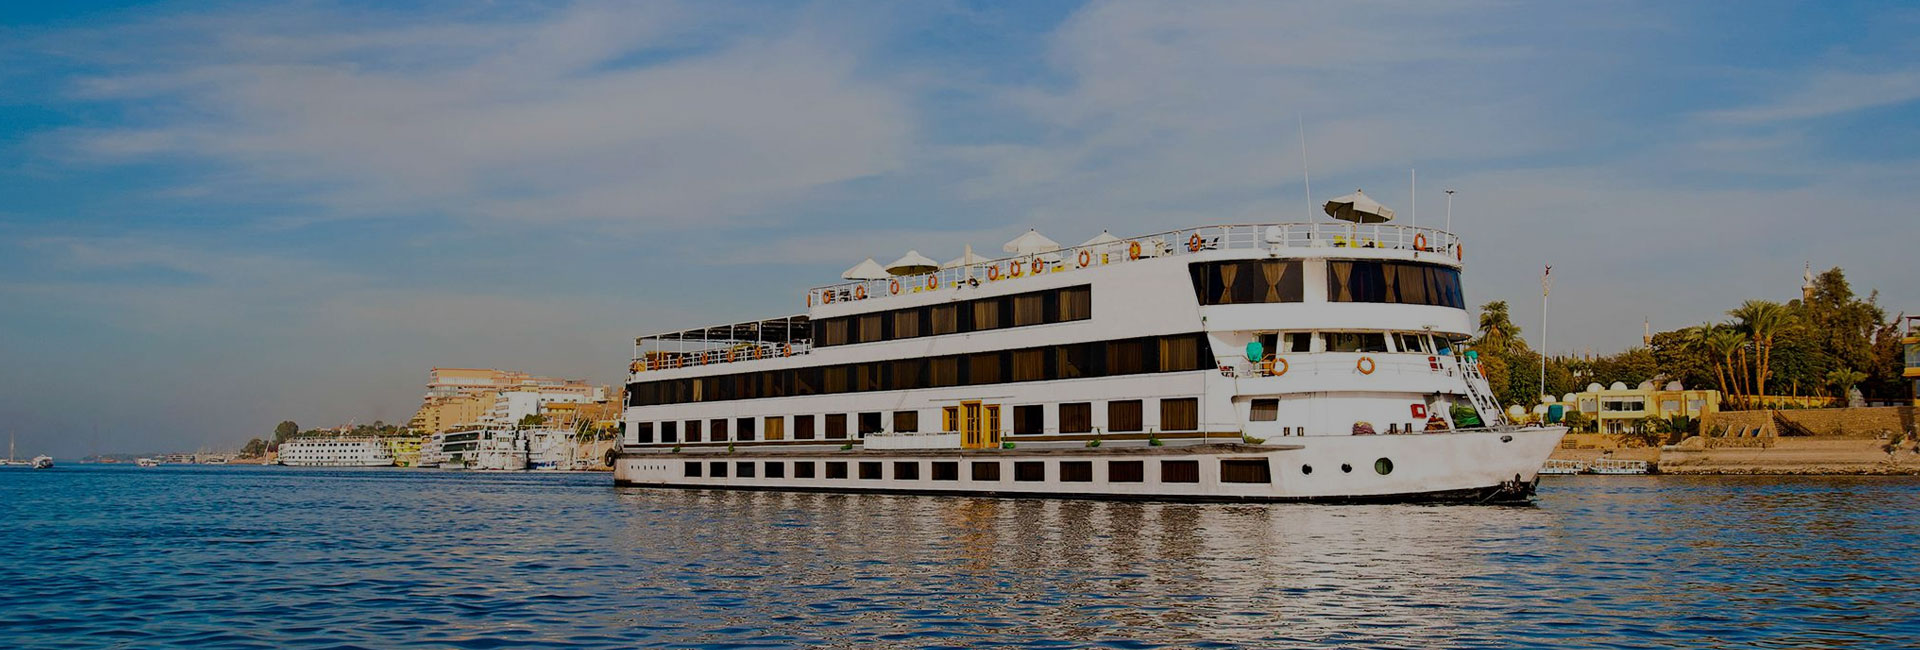 Nile River Cruise from Aswan